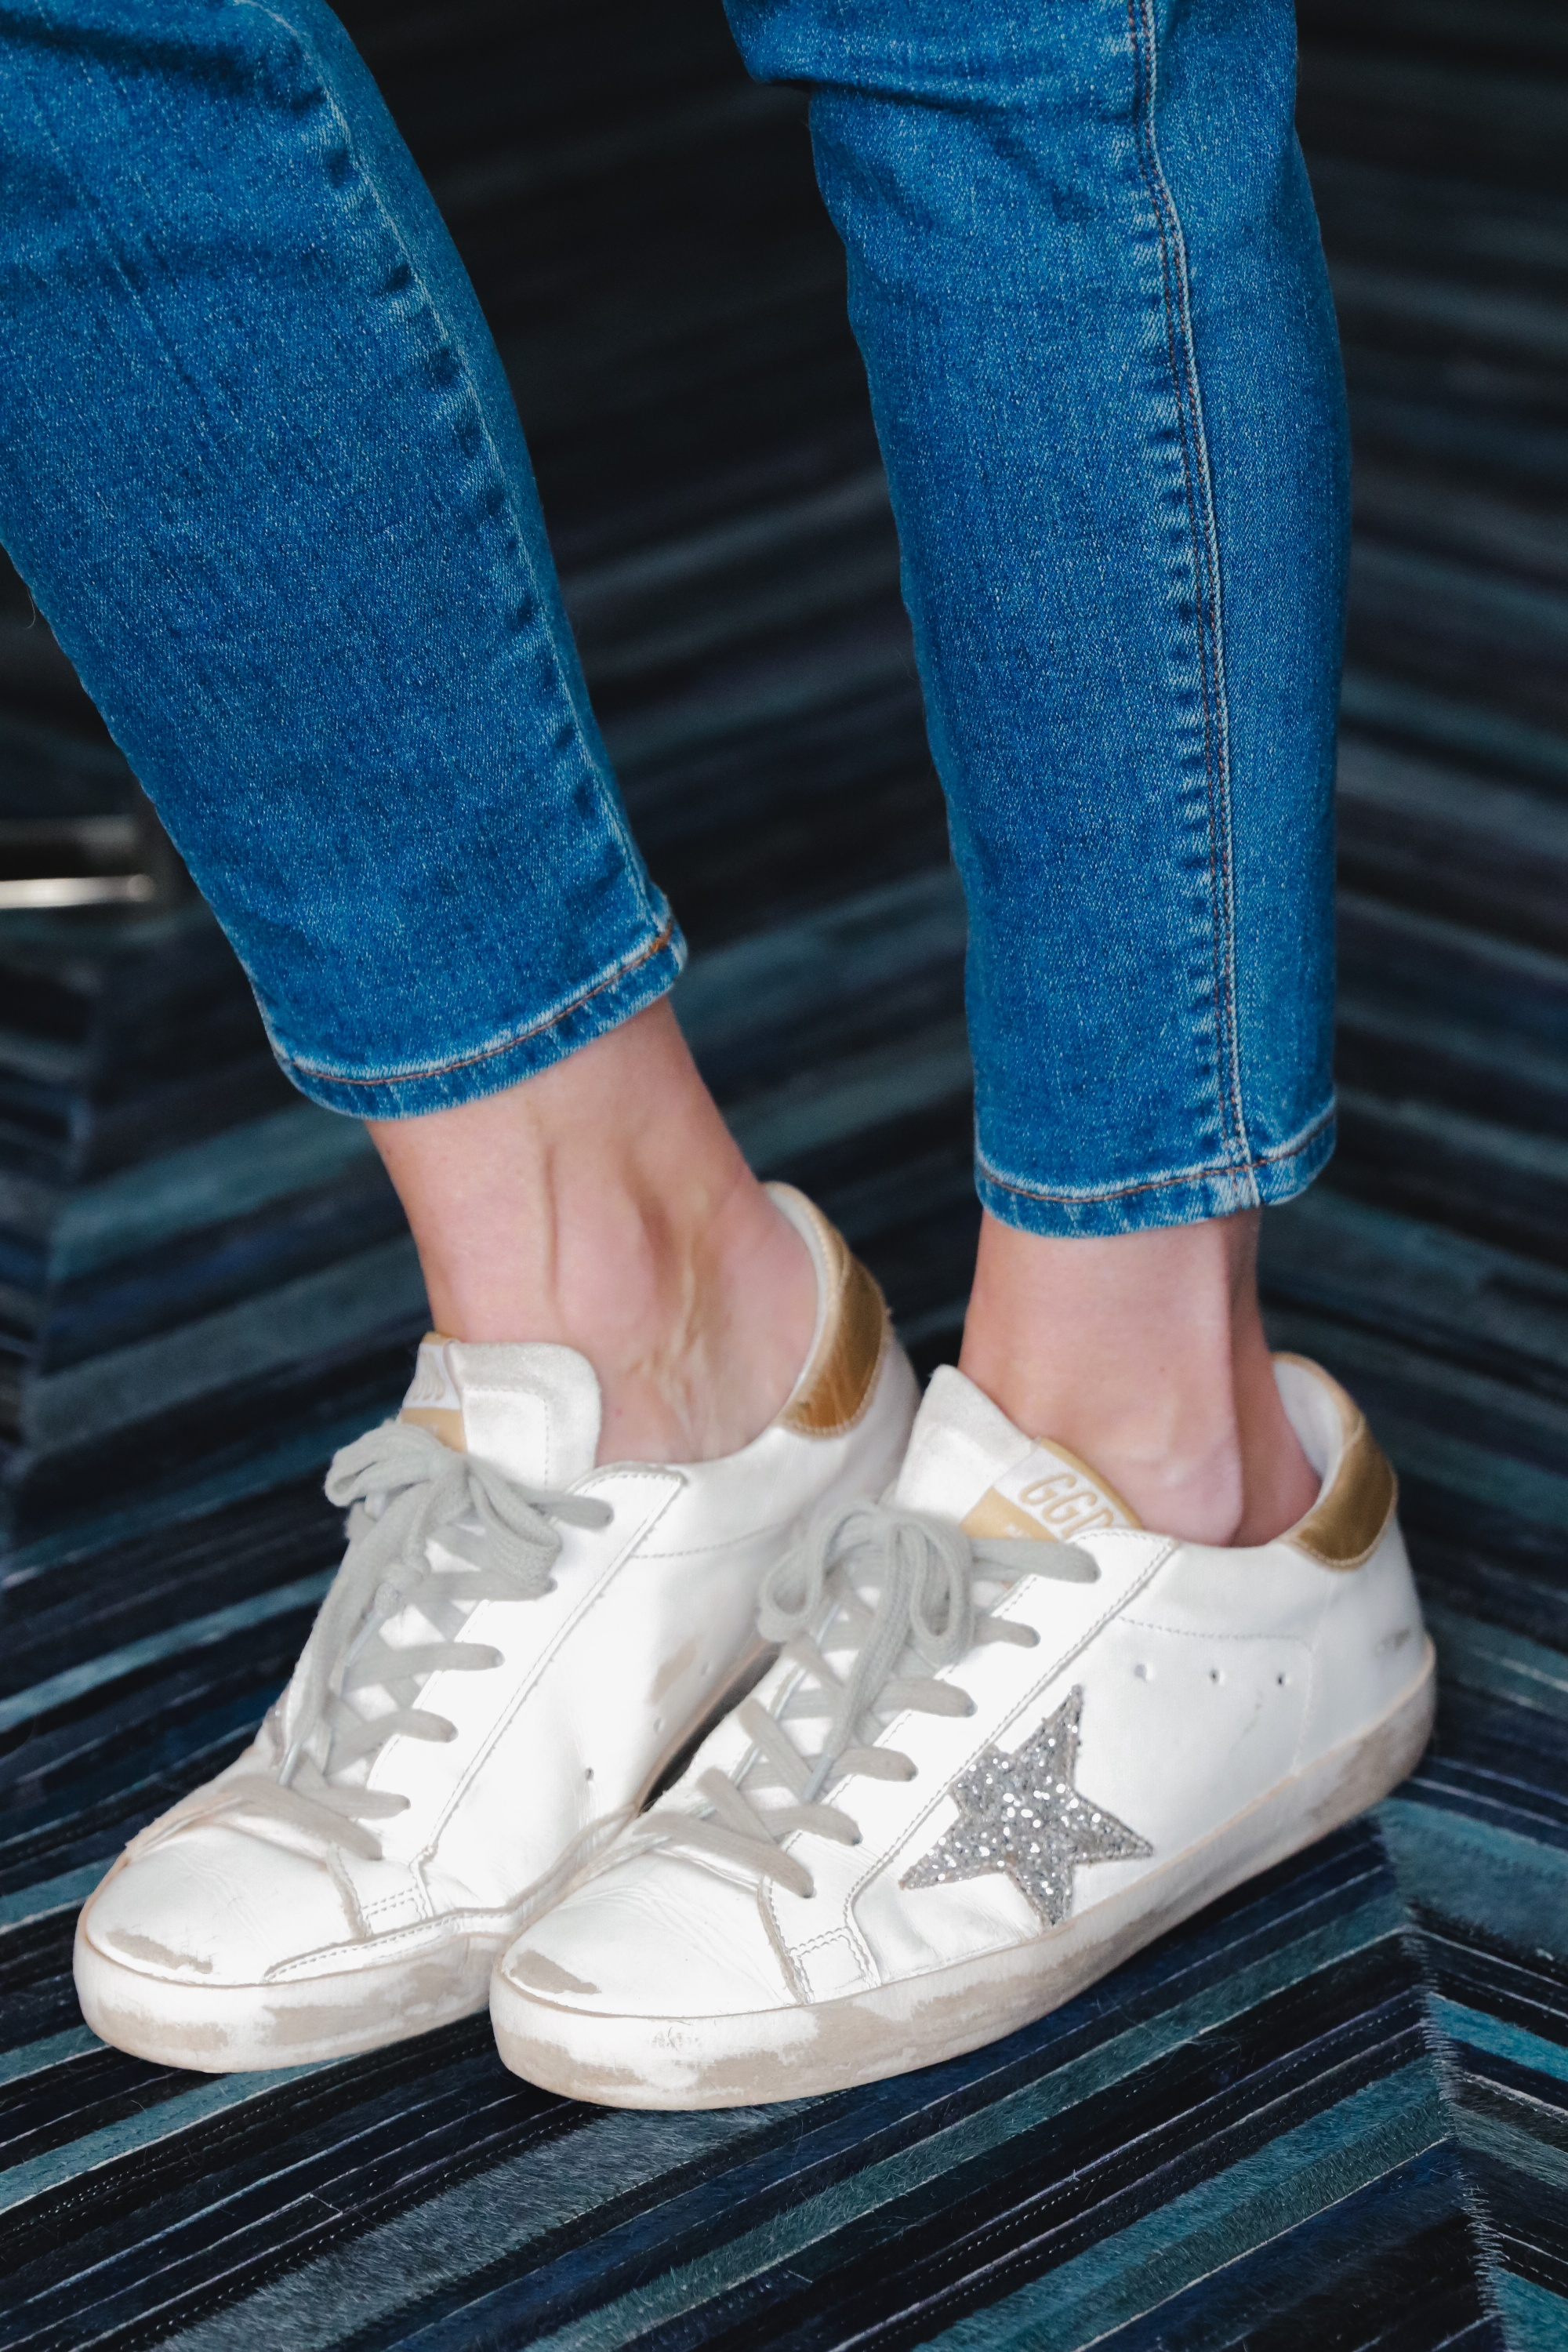 white golden goose all star low top sneakers with J Brand Natasha skinny blue jeans